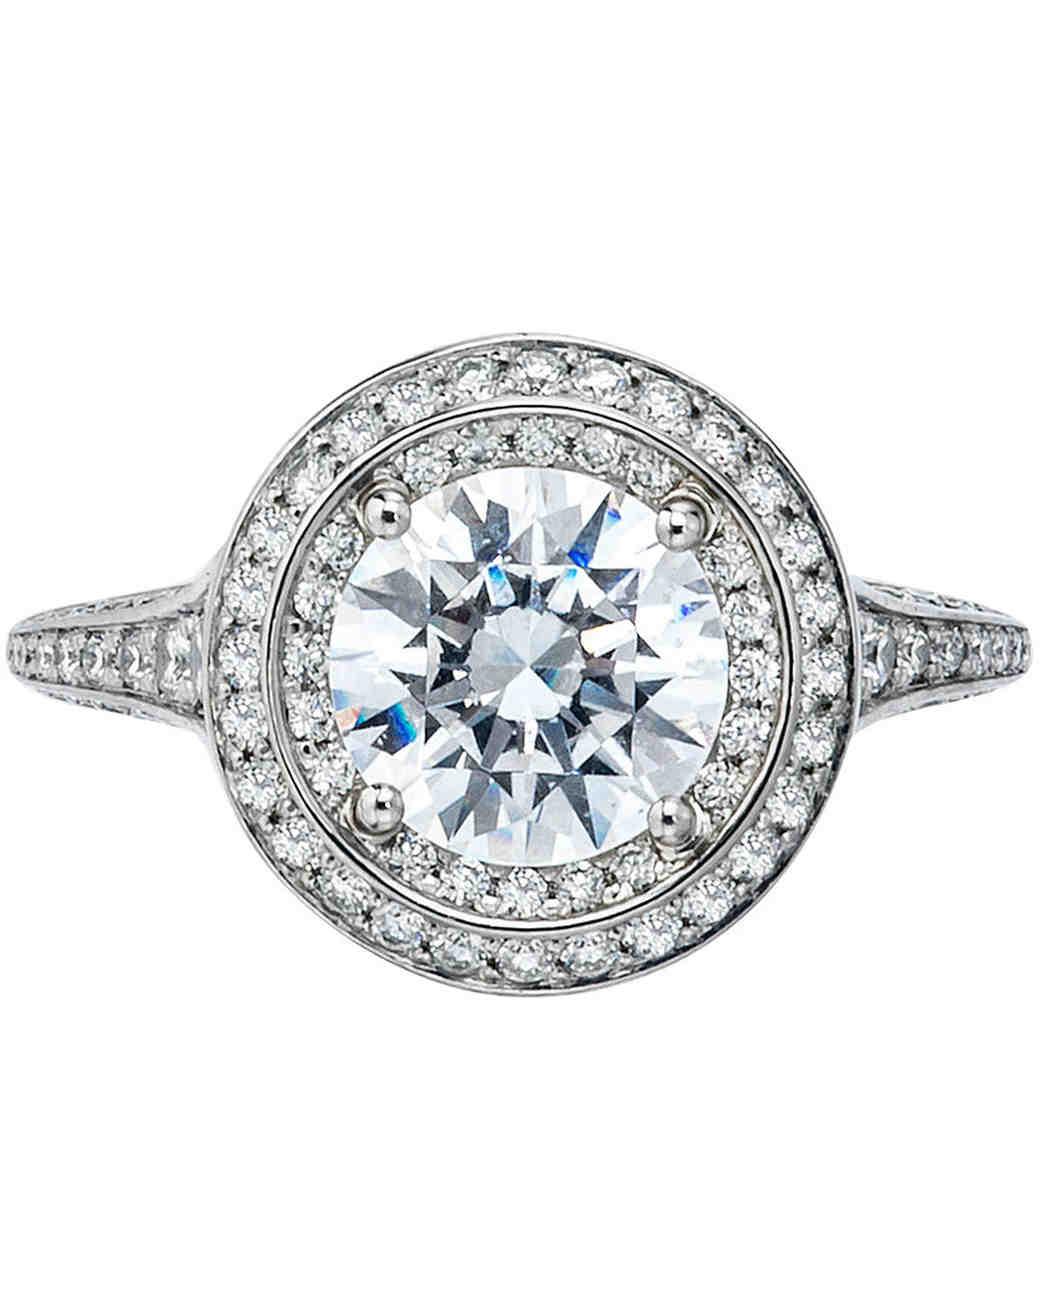 patterson see engagement copy ring every collections should collection bridal mark atrium bride rings new jewelry